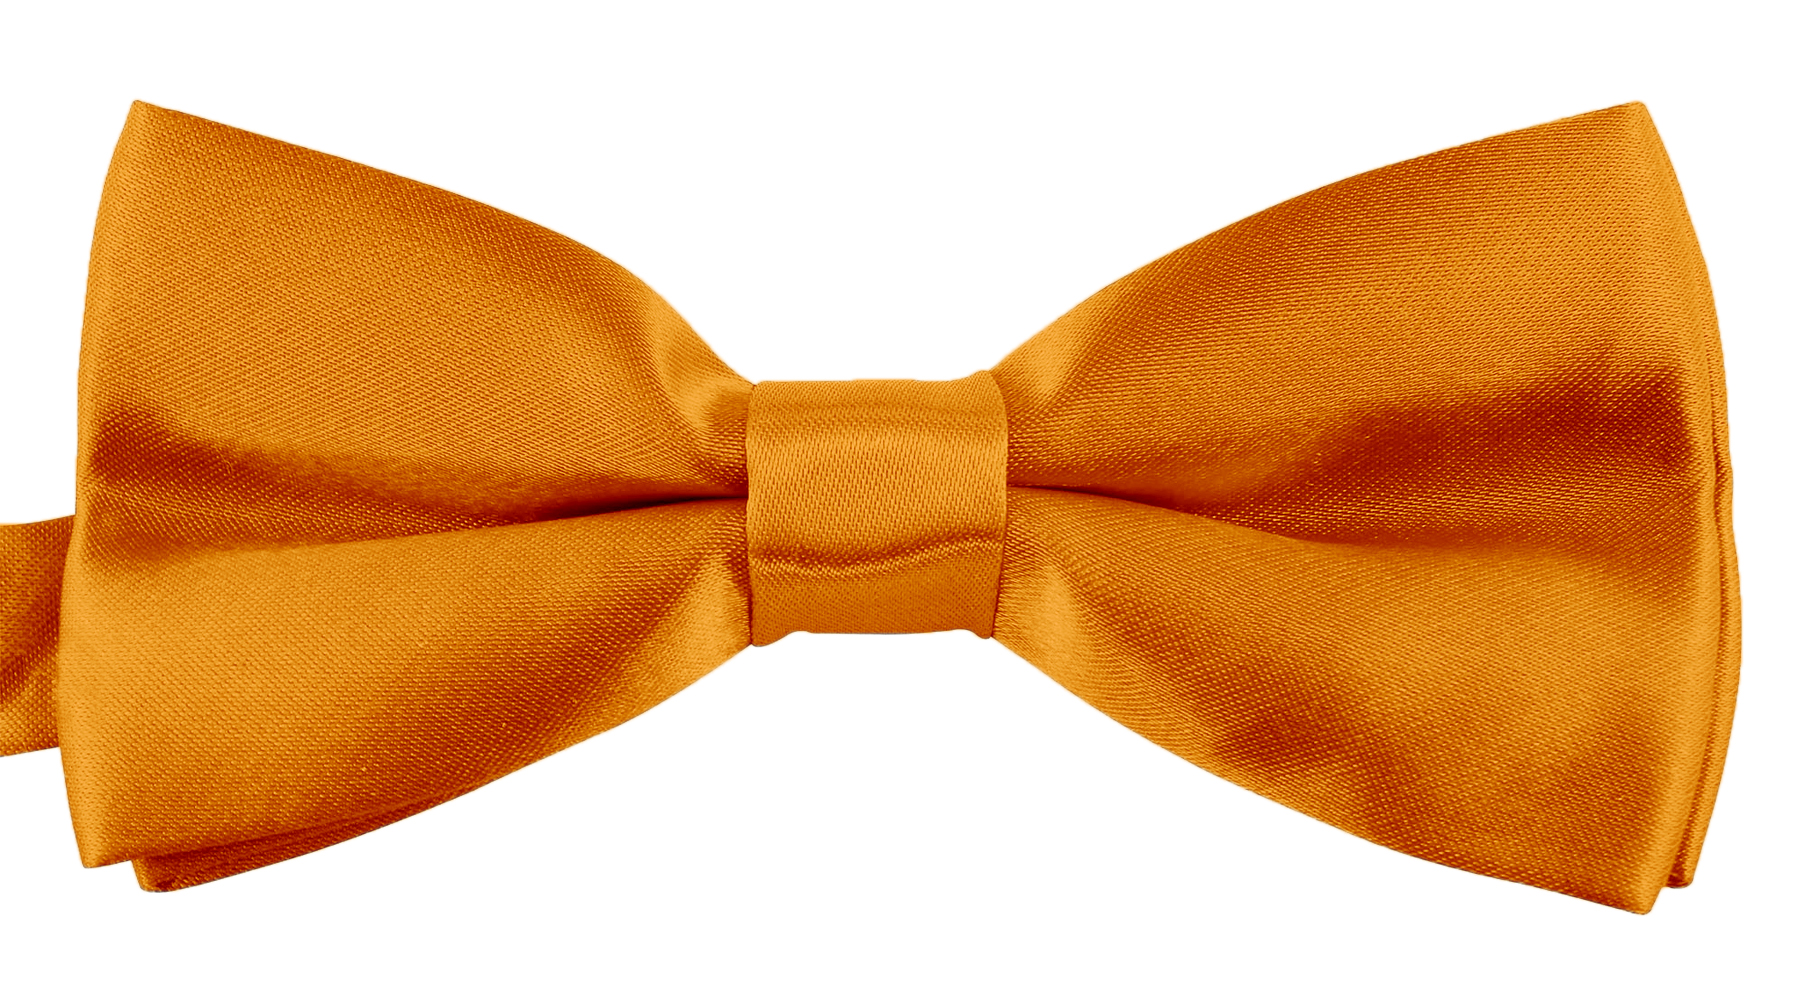 Classic Bow Ties For Men Adjustable Banded Pre-Tied Wedding Tuxedo - Golden Yellow